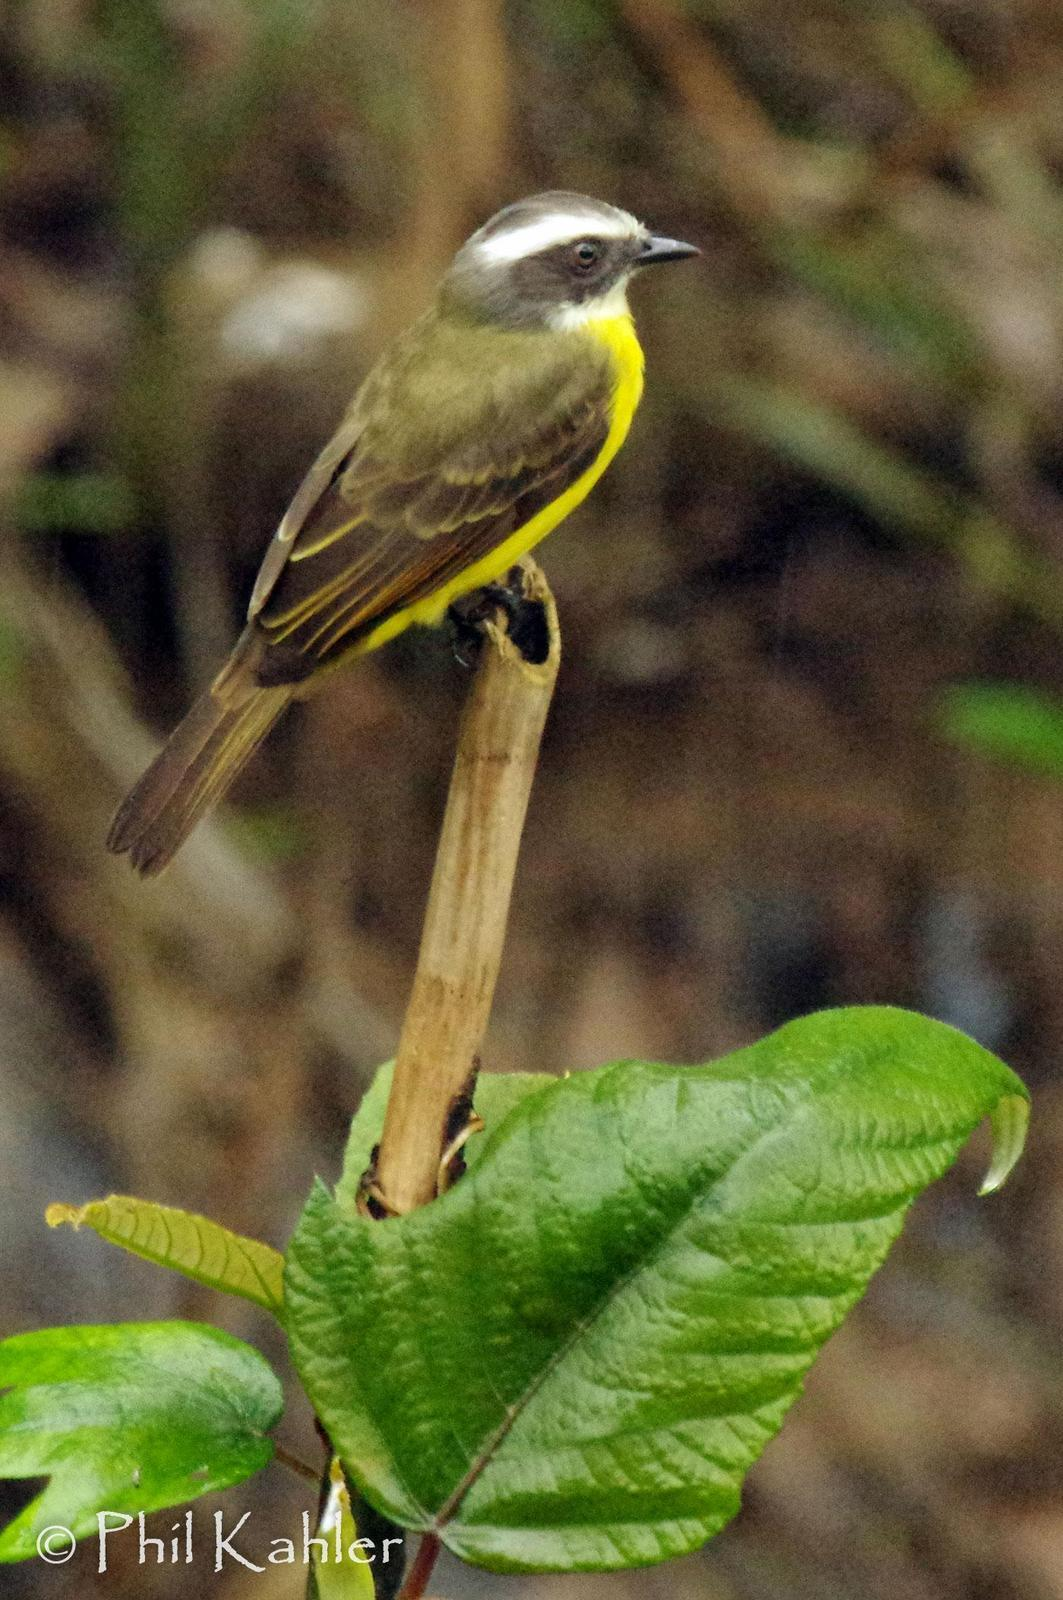 Social Flycatcher Photo by Phil Kahler